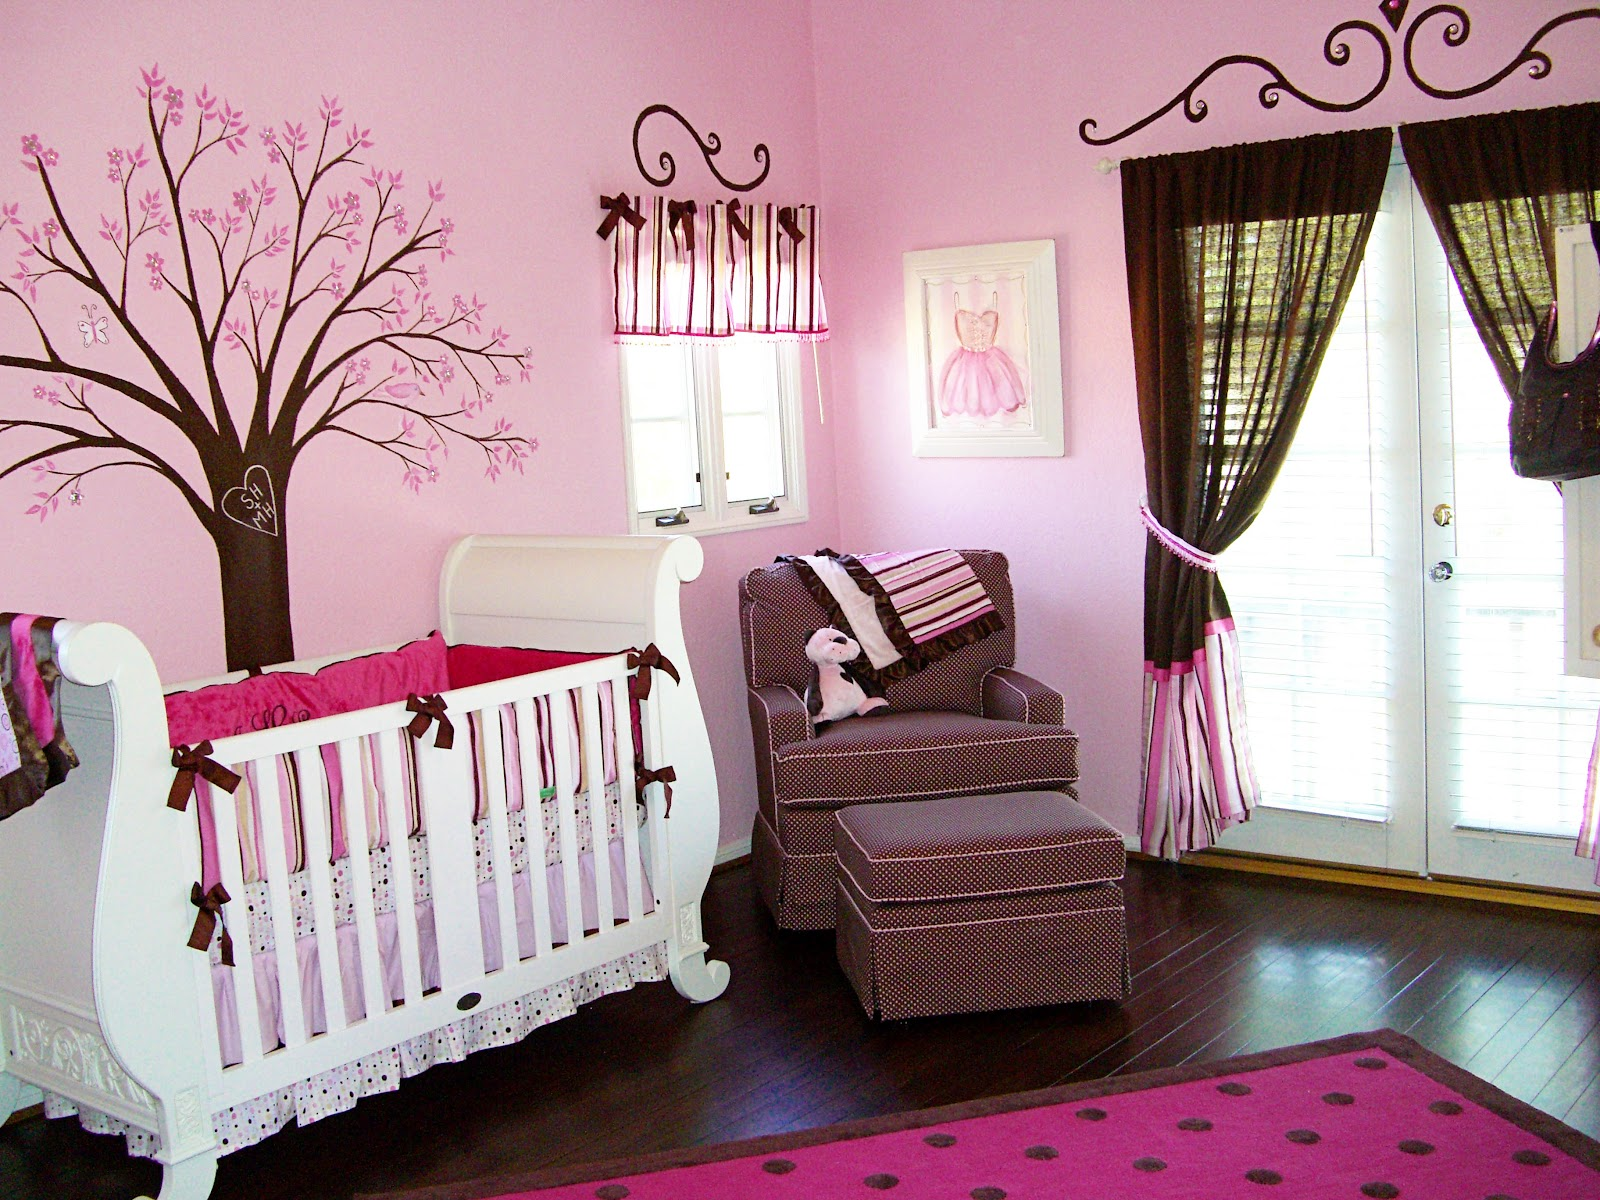 Full pink color girl baby room ideas decorate Infant girl room ideas